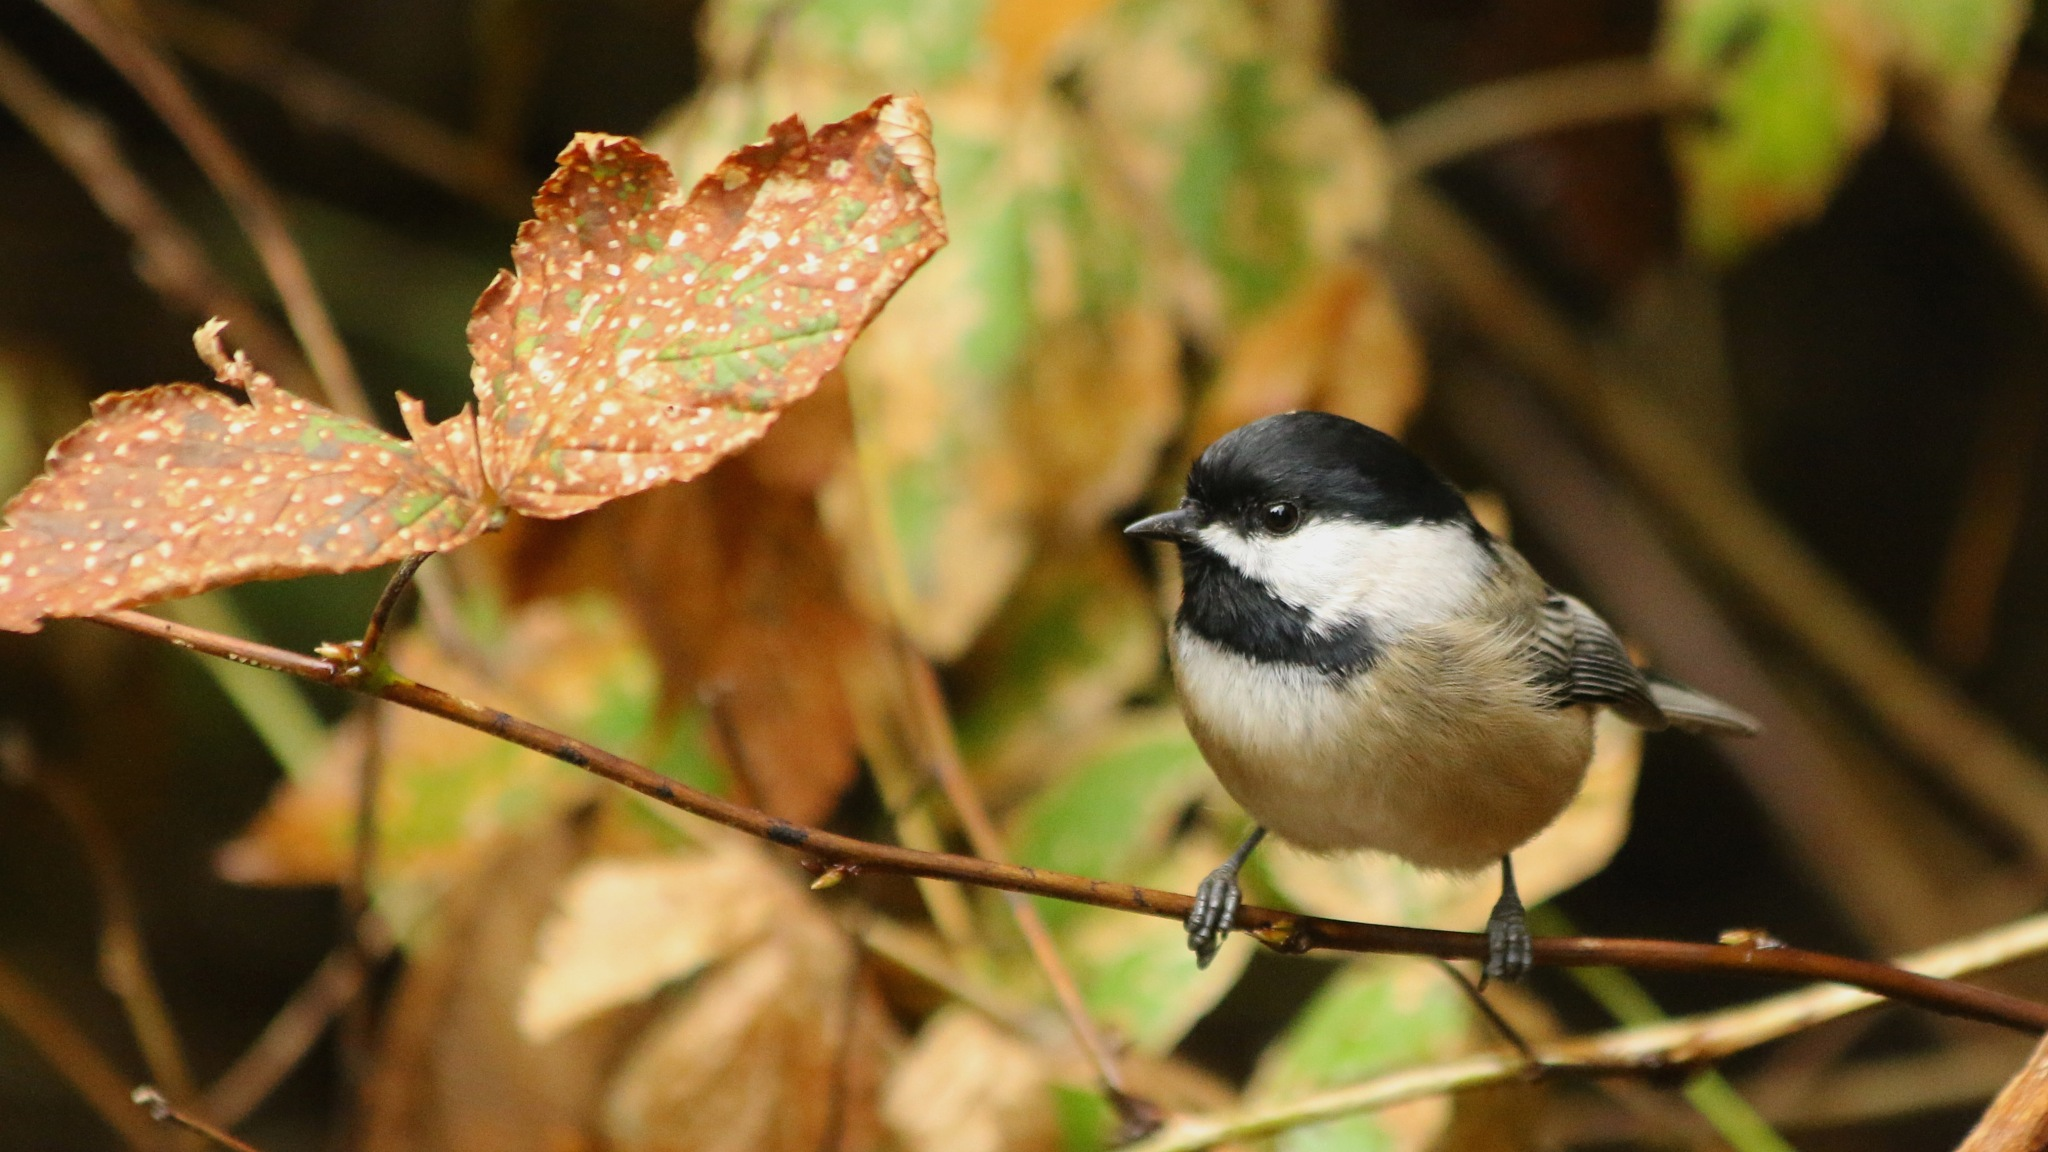 Black-capped Chickadee by thurd